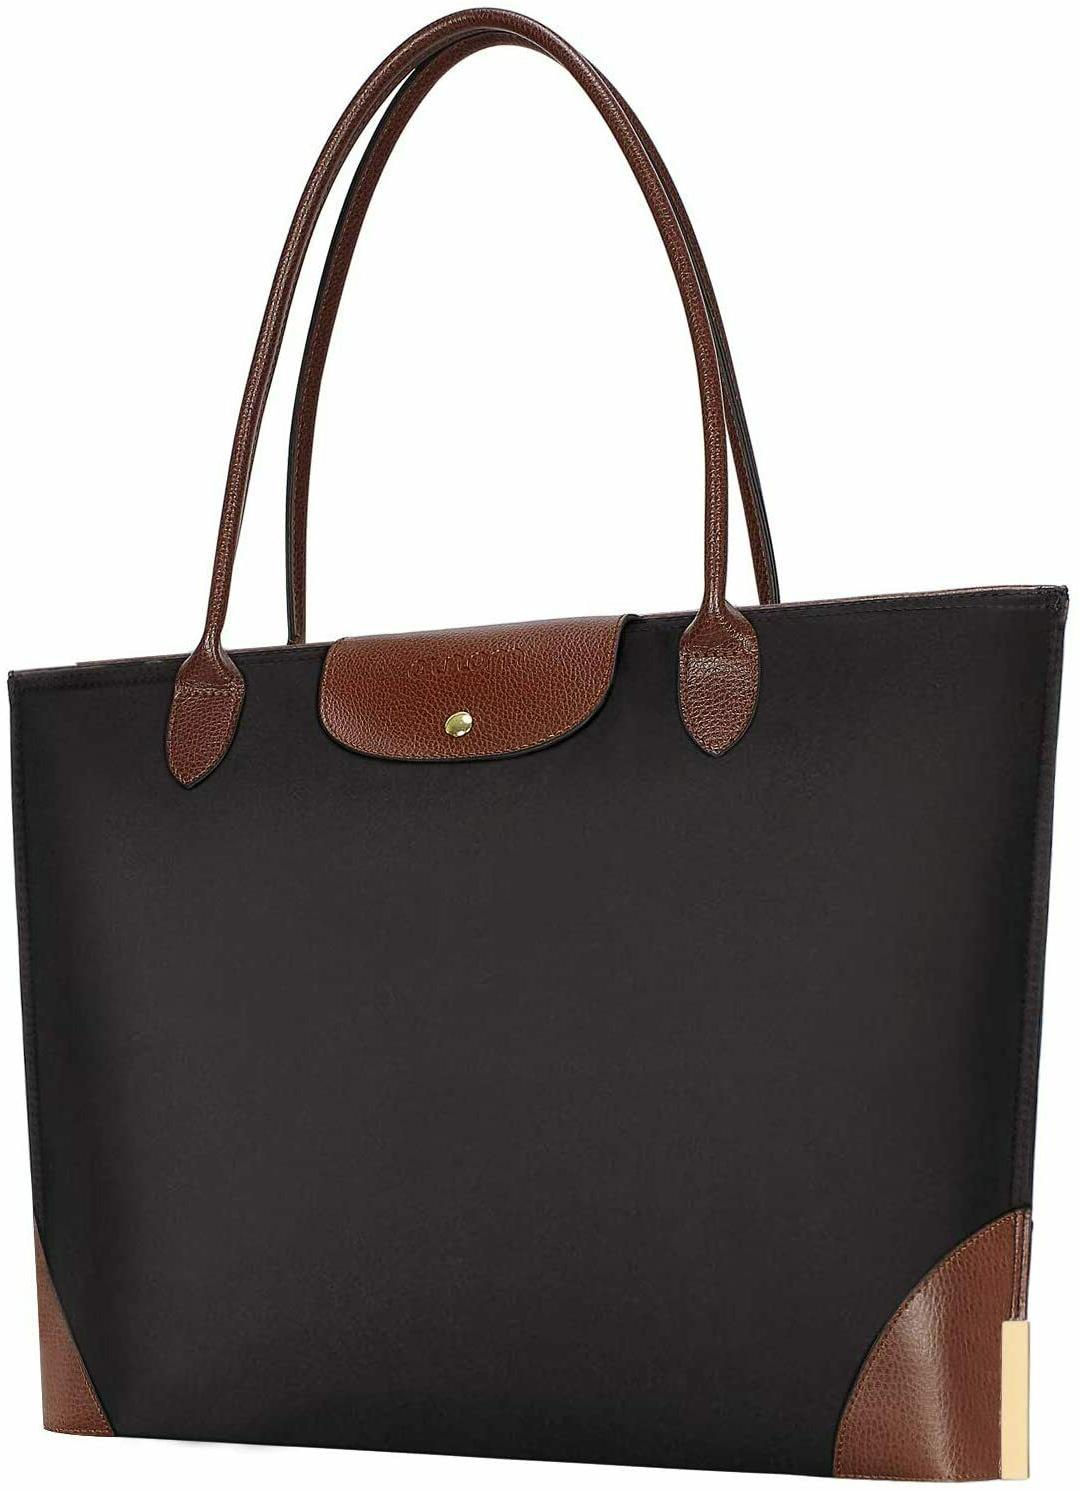 15.6 Inch Tote Bag for Women Office